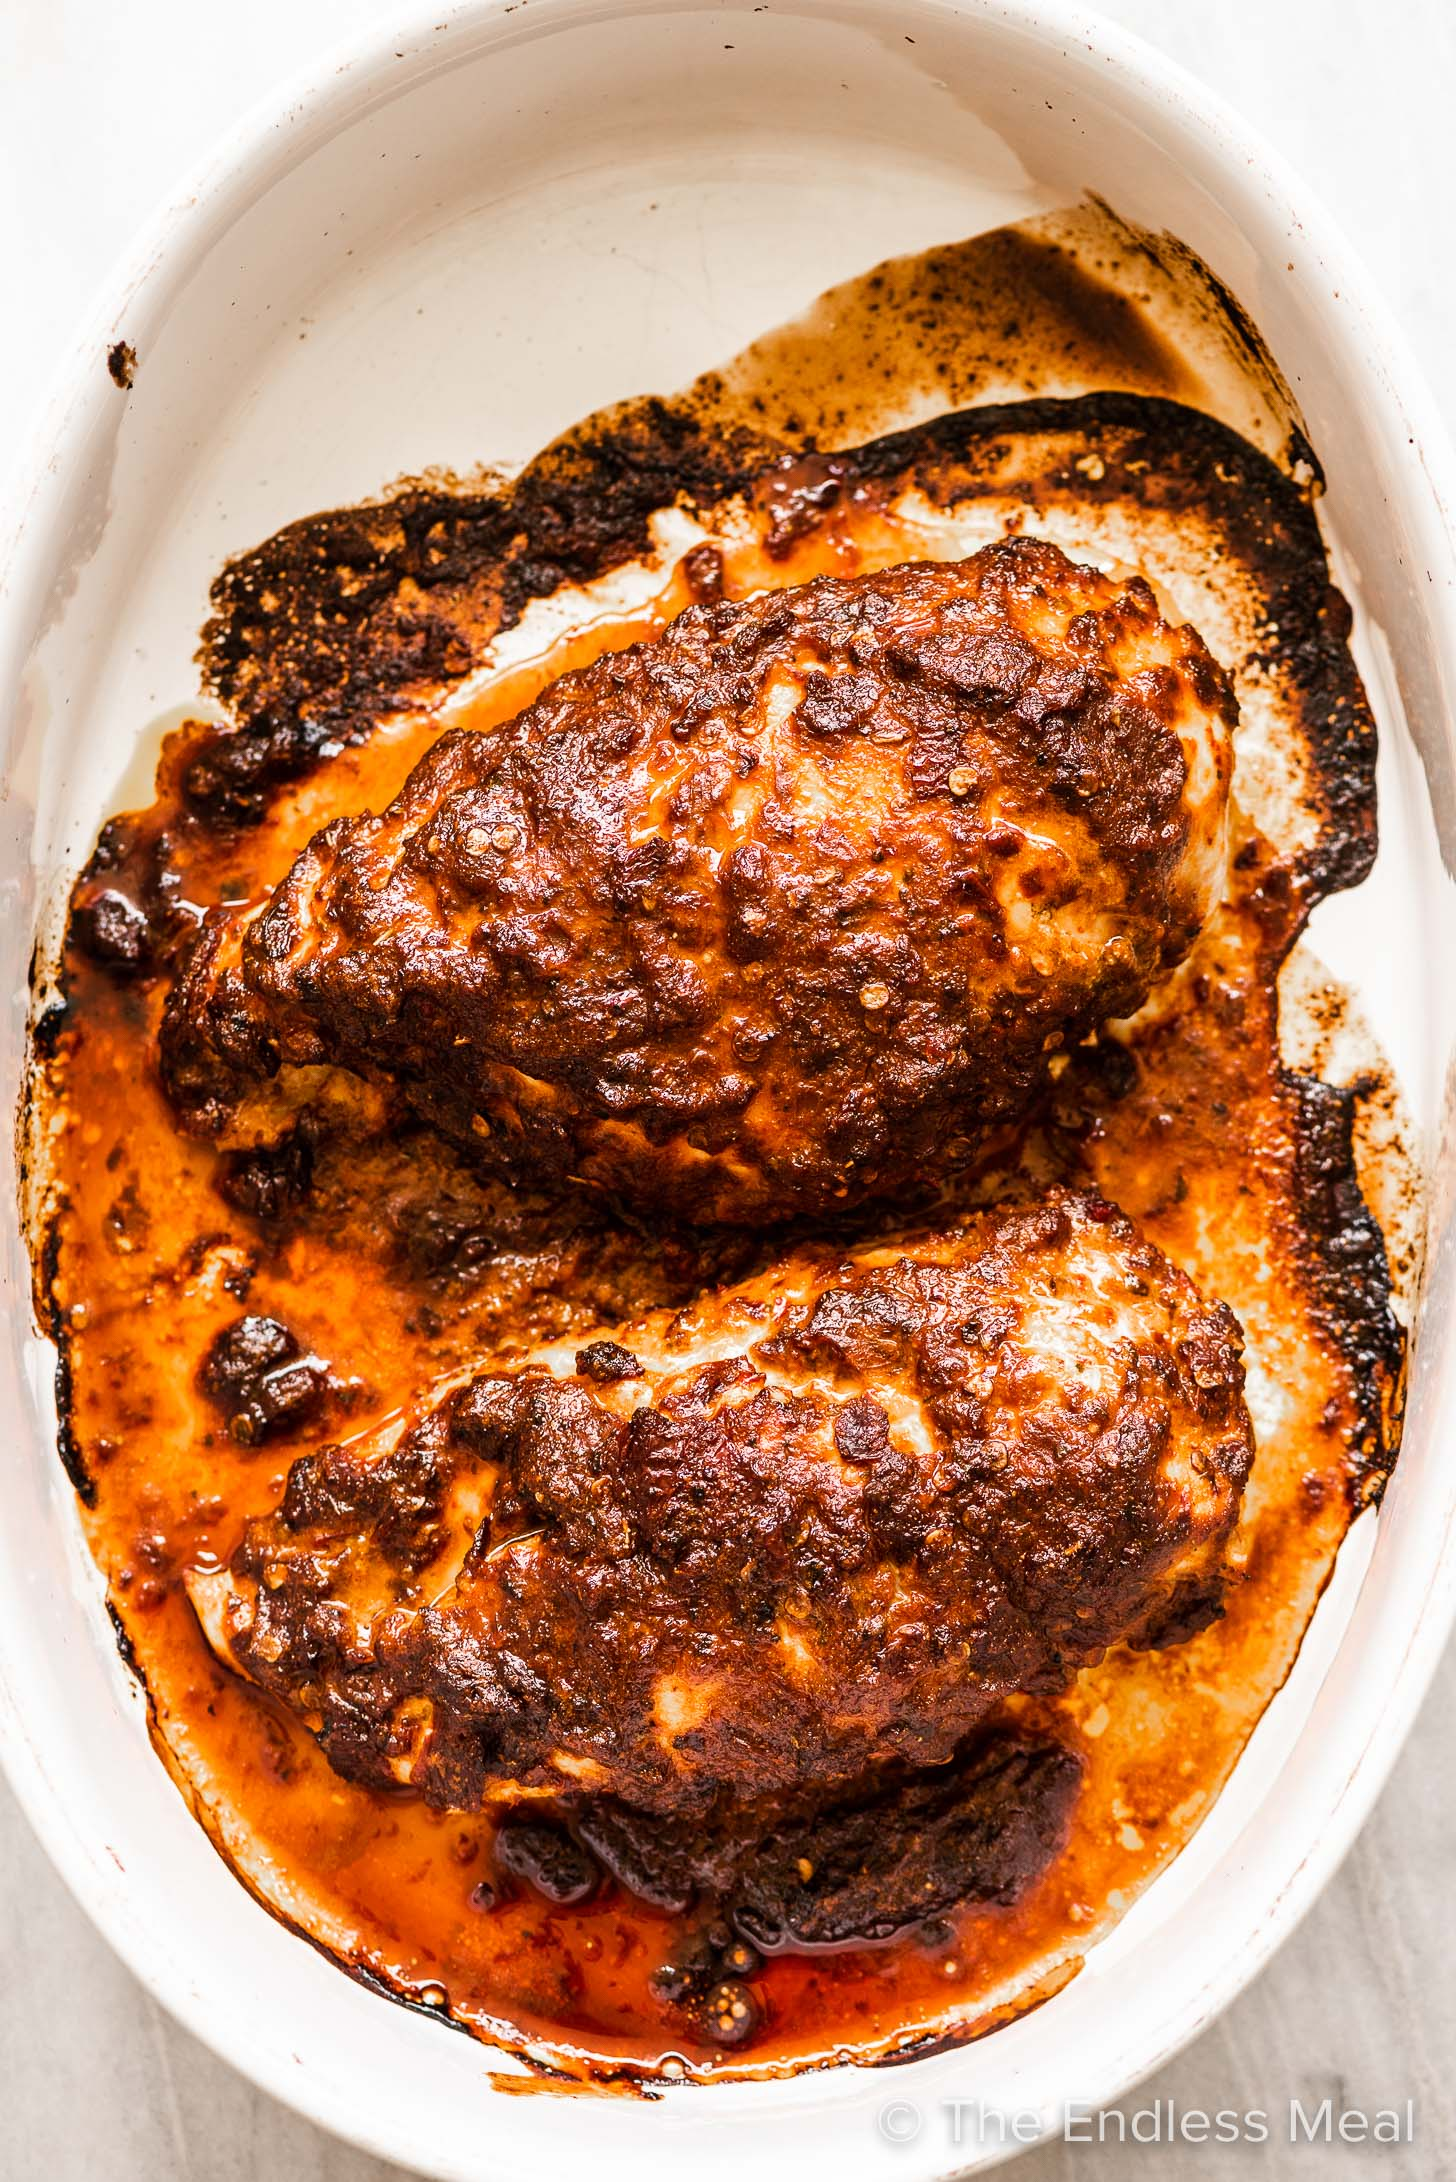 Chicken breasts marinated in a spicy chipotle marinade in a baking dish.